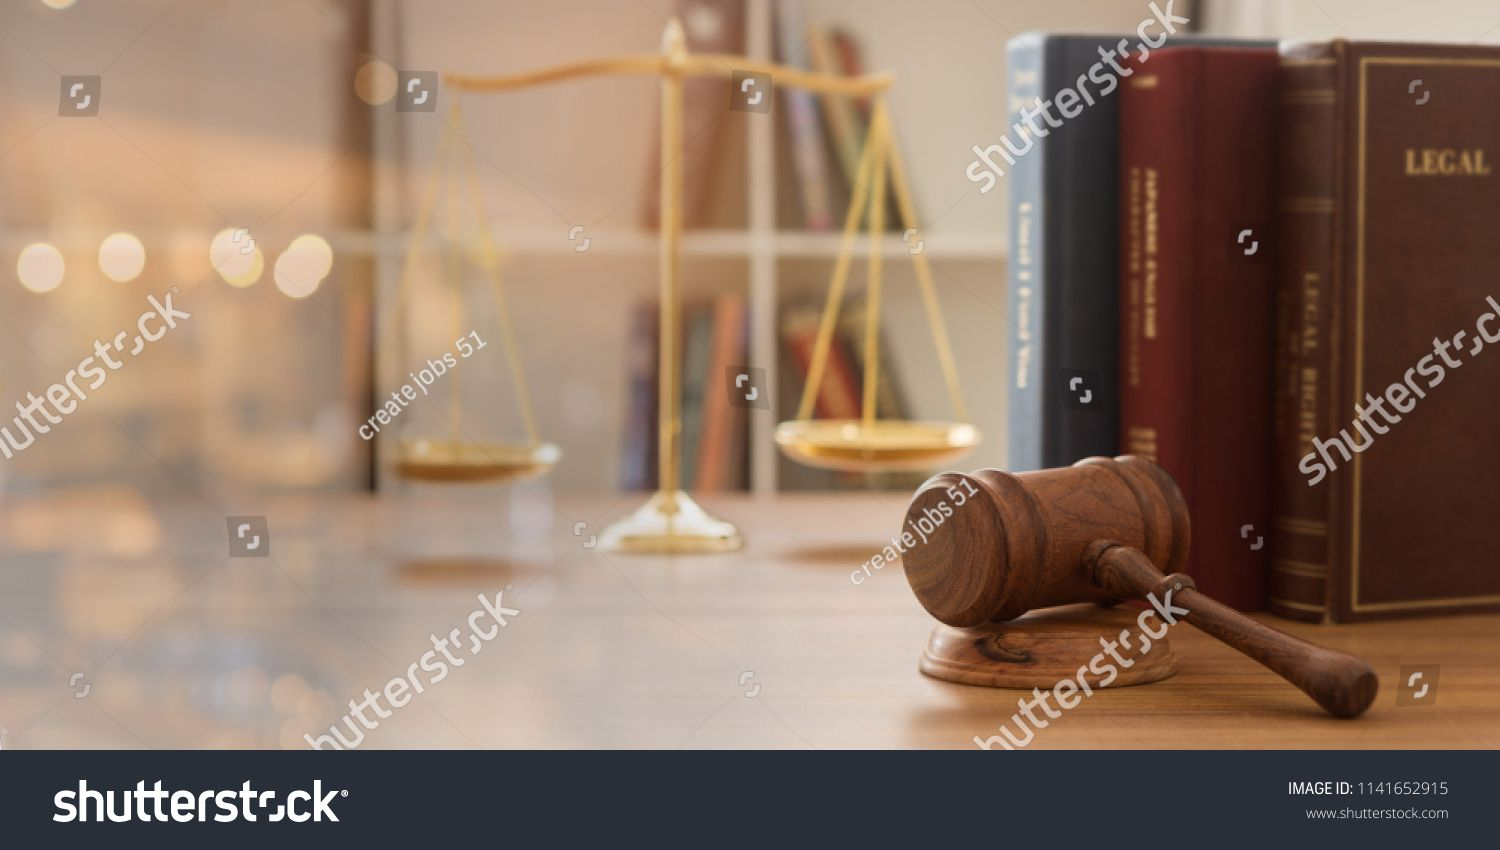 Judge Gavel With Law Books And Scales Of Justice Concept Of Justice Legal Jurisprudence Wide View Books Scales Law Judge Law Books Concept Justice